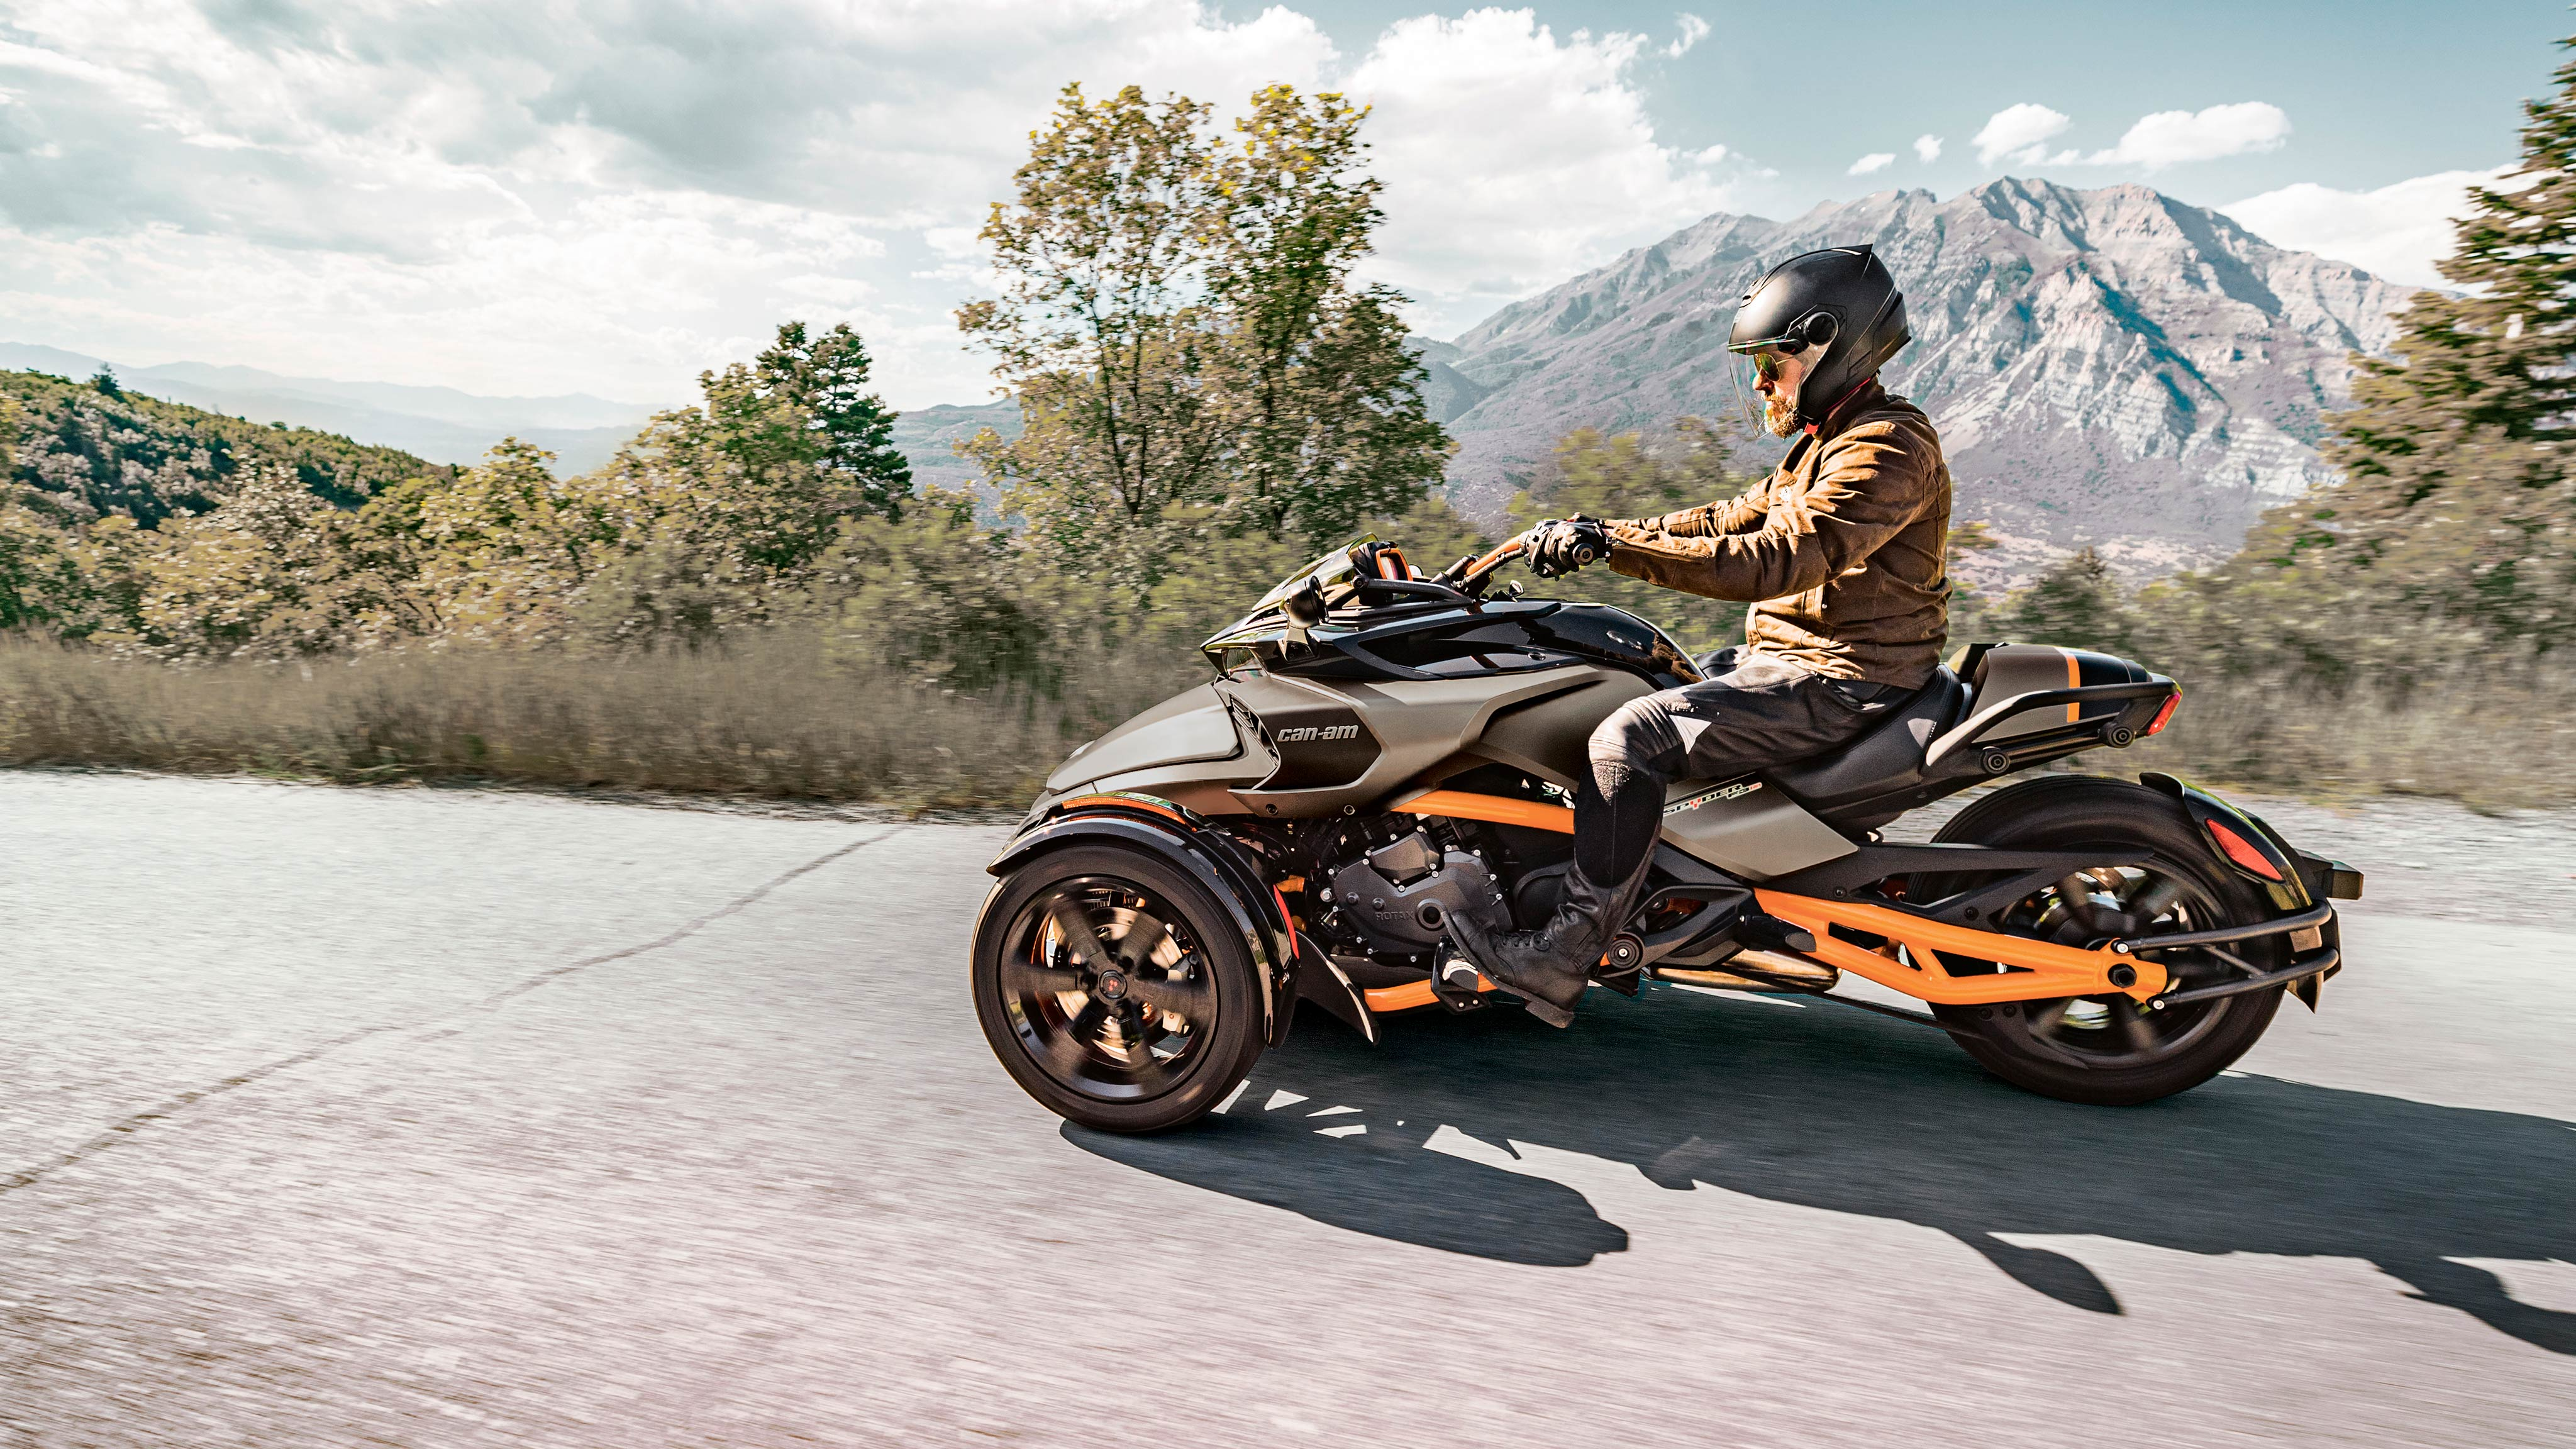 A man riding his Can-Am Spyder along the open road in front of a mountainous landscape